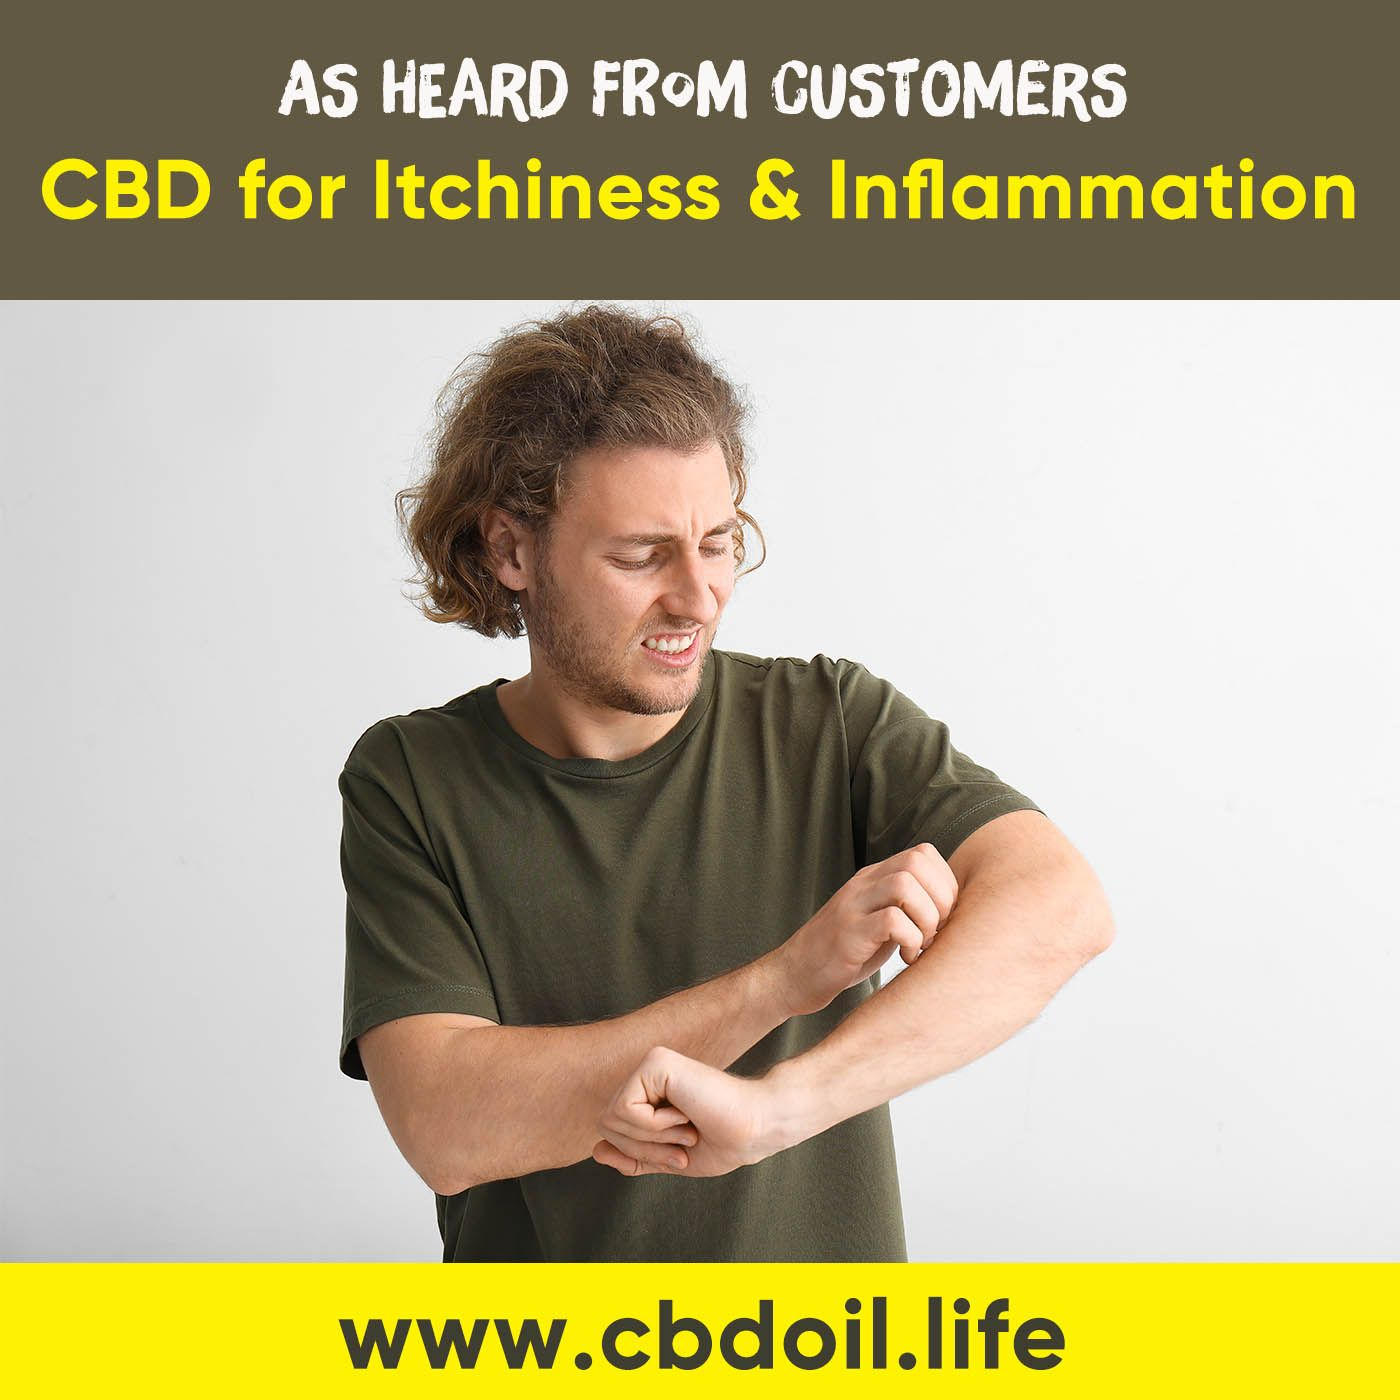 CBD for Itchiness and Inflammation from a That's Natural Customer